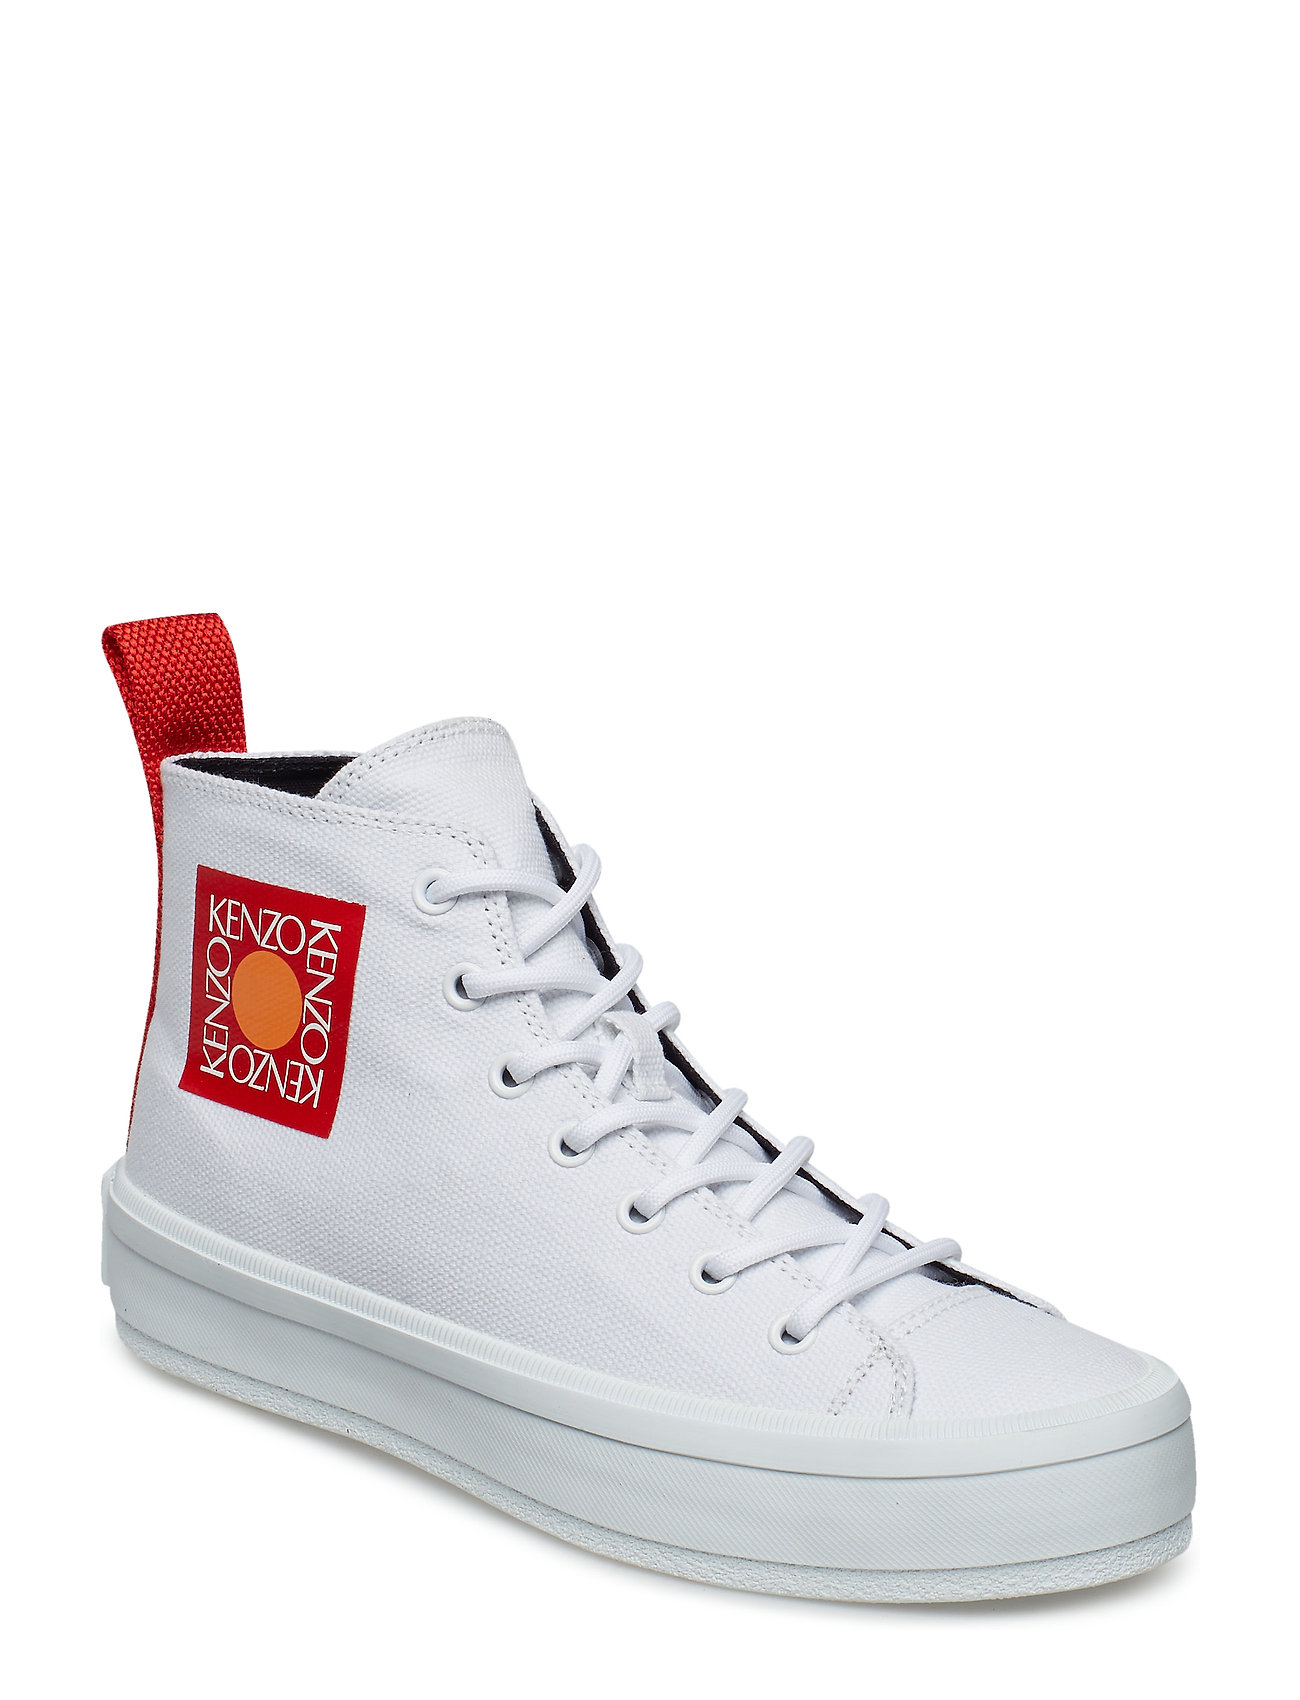 Image of Low Top Sneaker Main High-top Sneakers Hvid Kenzo (3109691445)